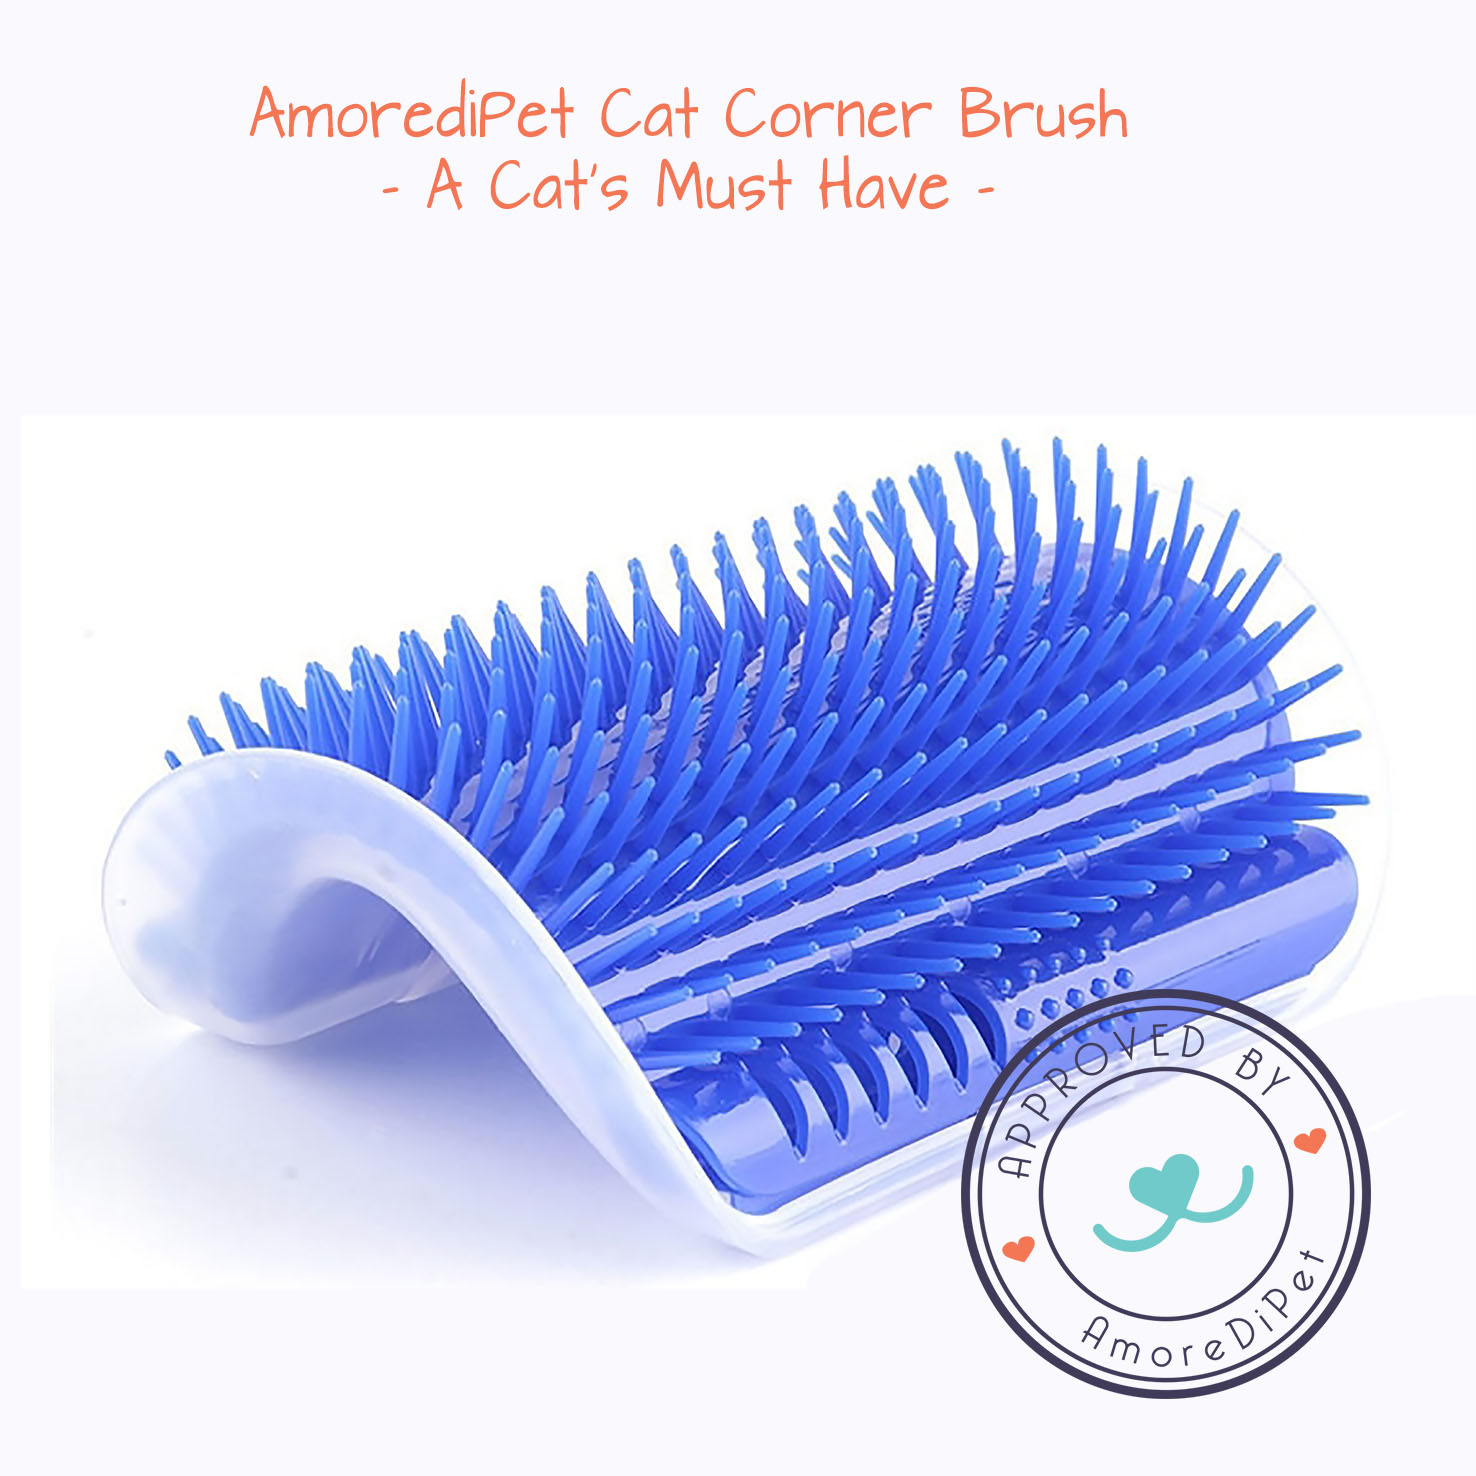 AmorediPet Cat Corner Brush